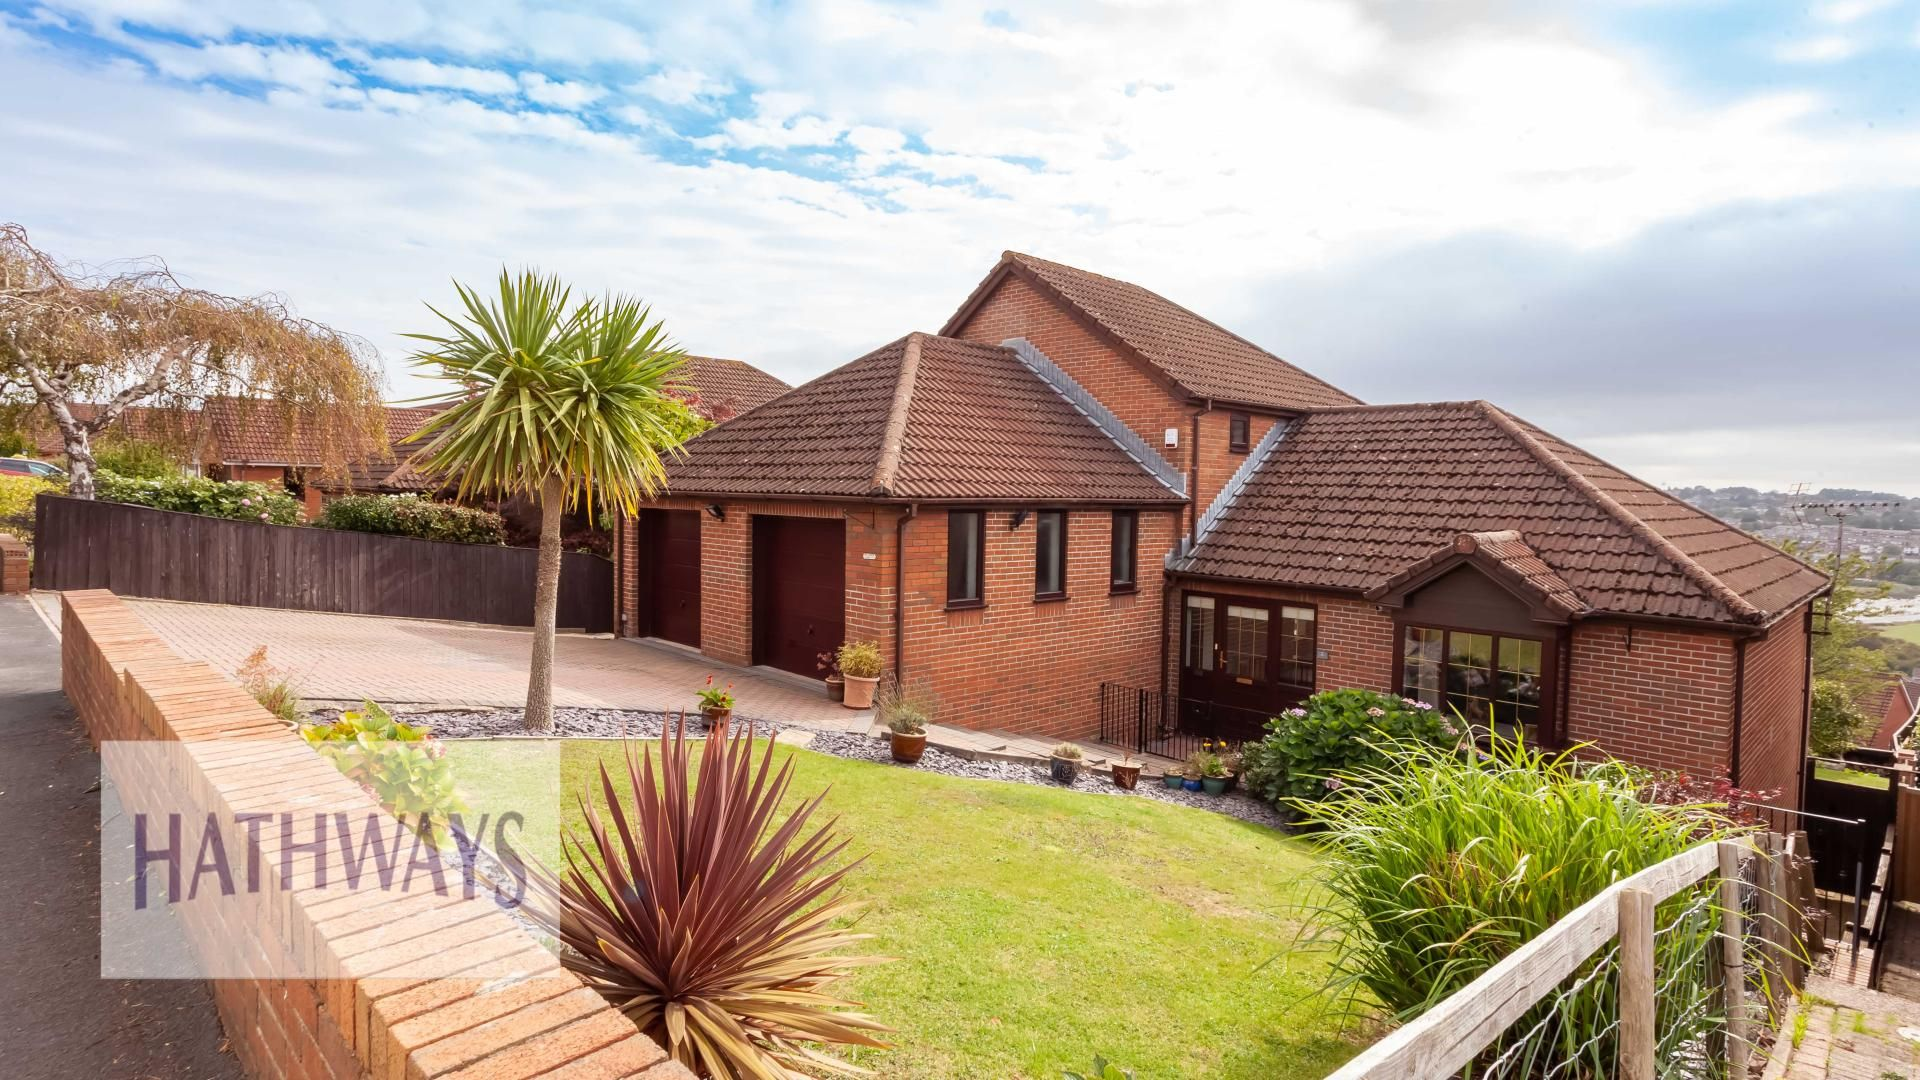 5 bed house for sale in Priory Close - Property Image 1